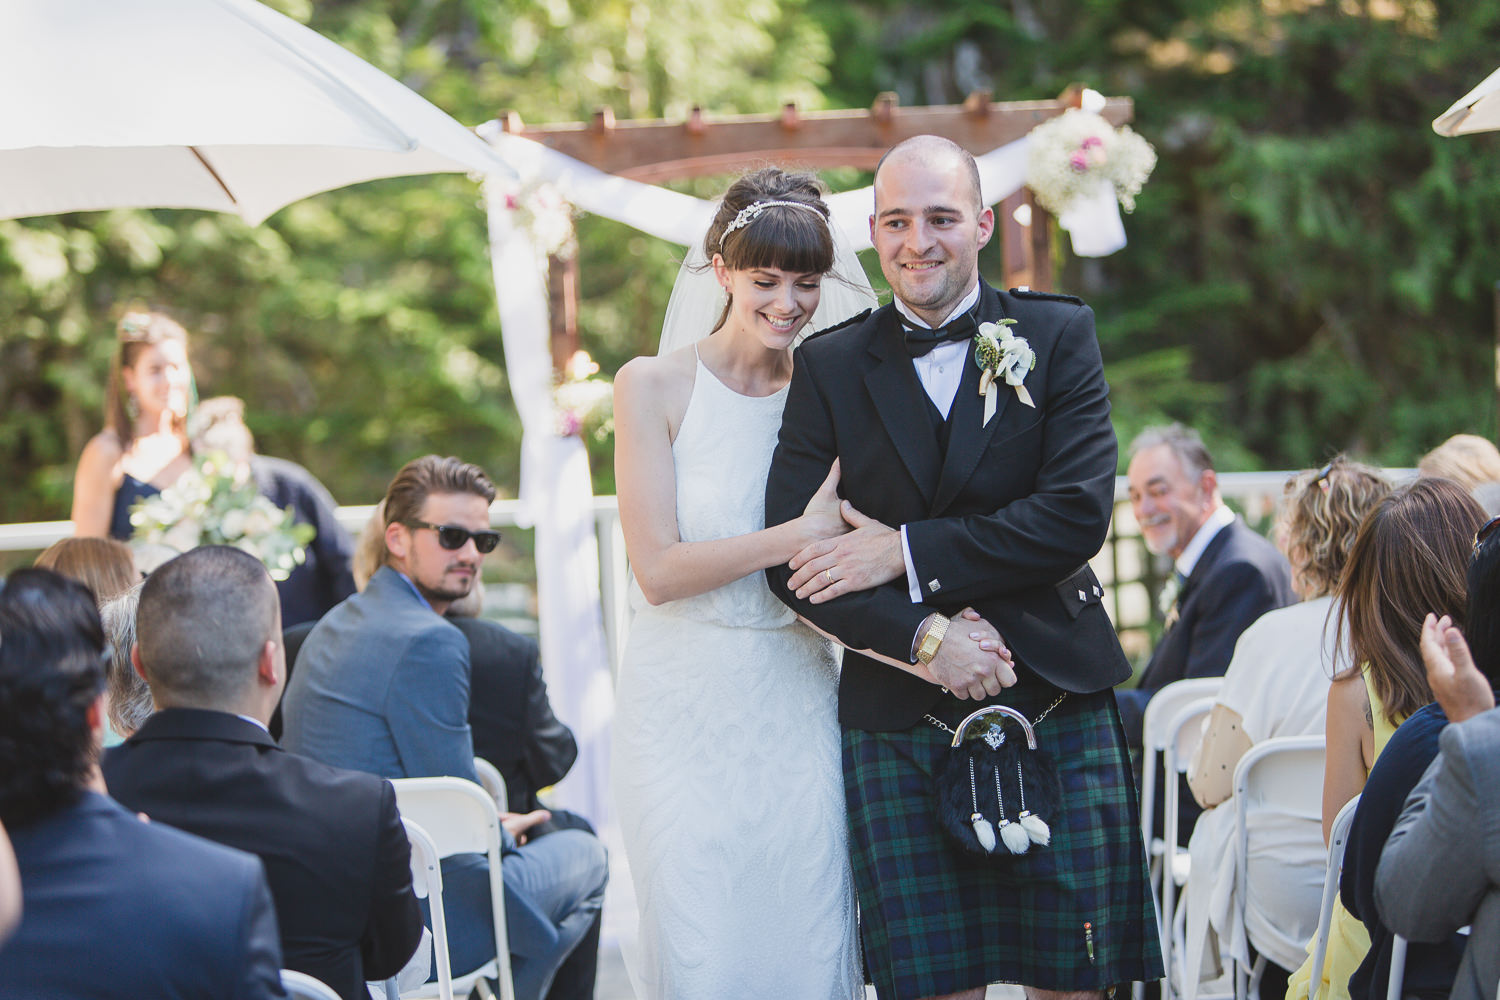 Wedding couple recessional with groom in kilt at Squamish wedding